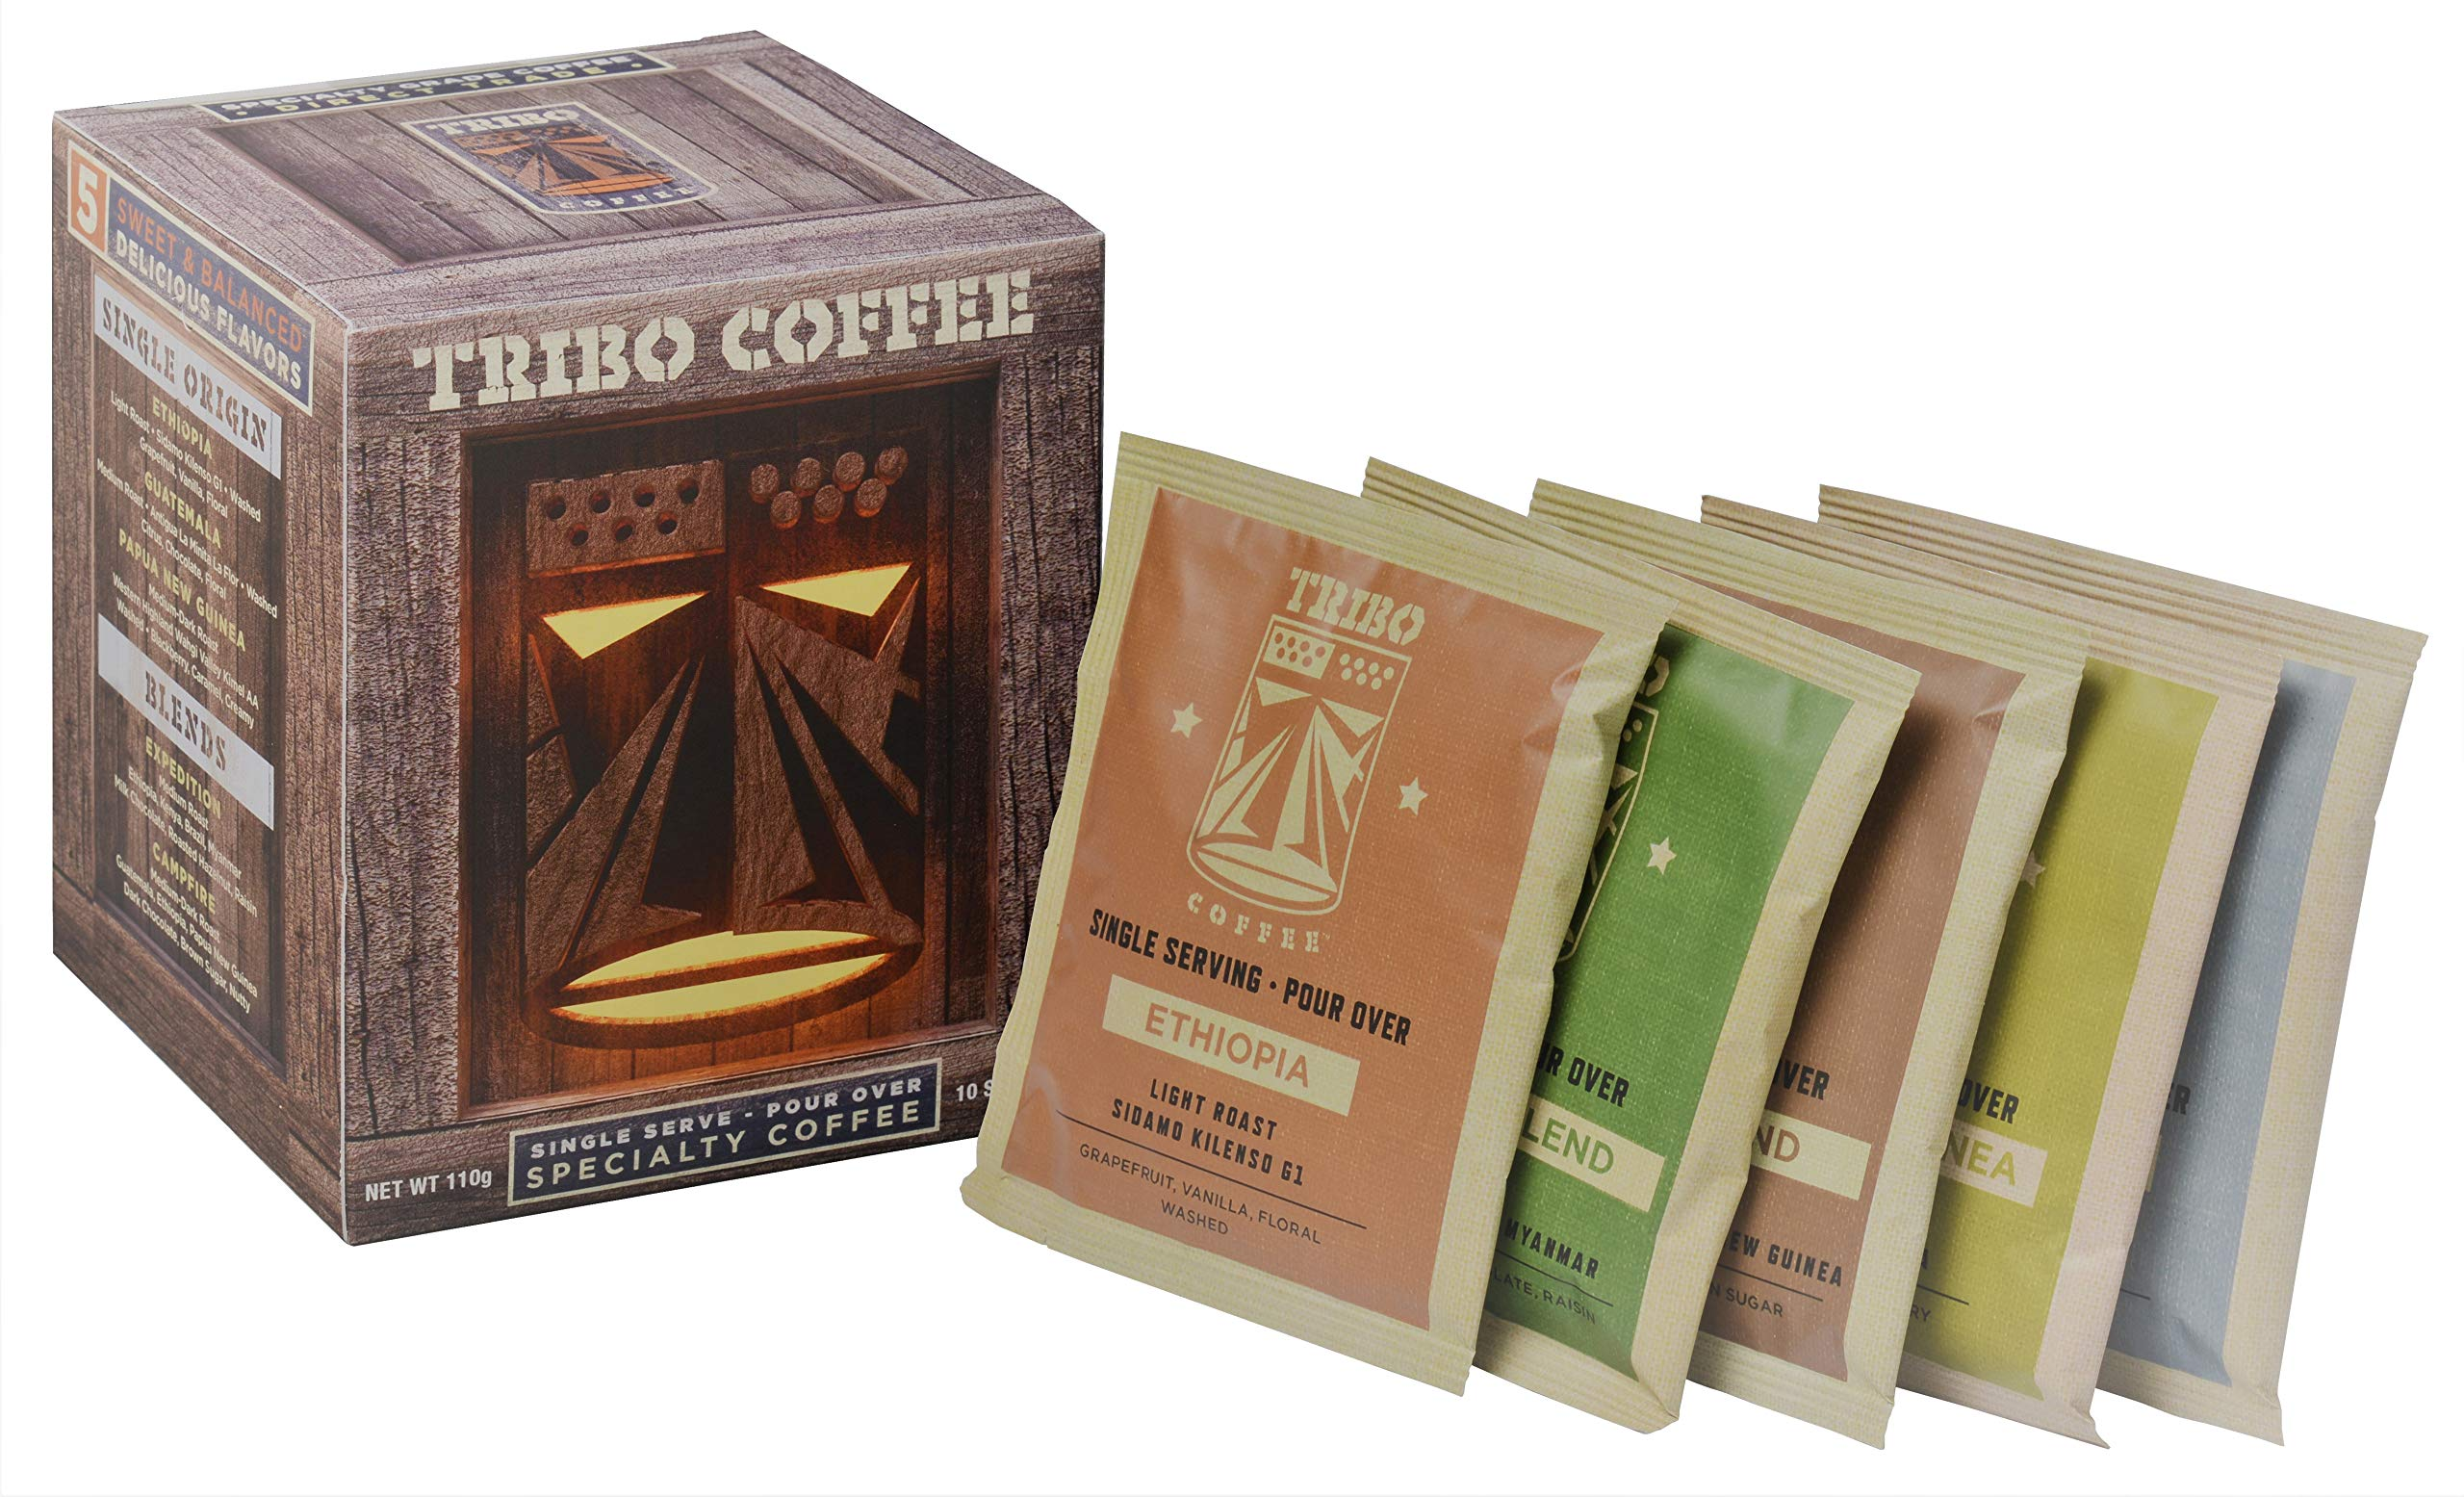 TRIBO COFFEE Single-Serve Portable Pour Over Drip Coffee | Specialty Grade | Small Batch Roasted - Variety | 10 Servings Per Box (Light, Medium & Med-Dark Roasts)